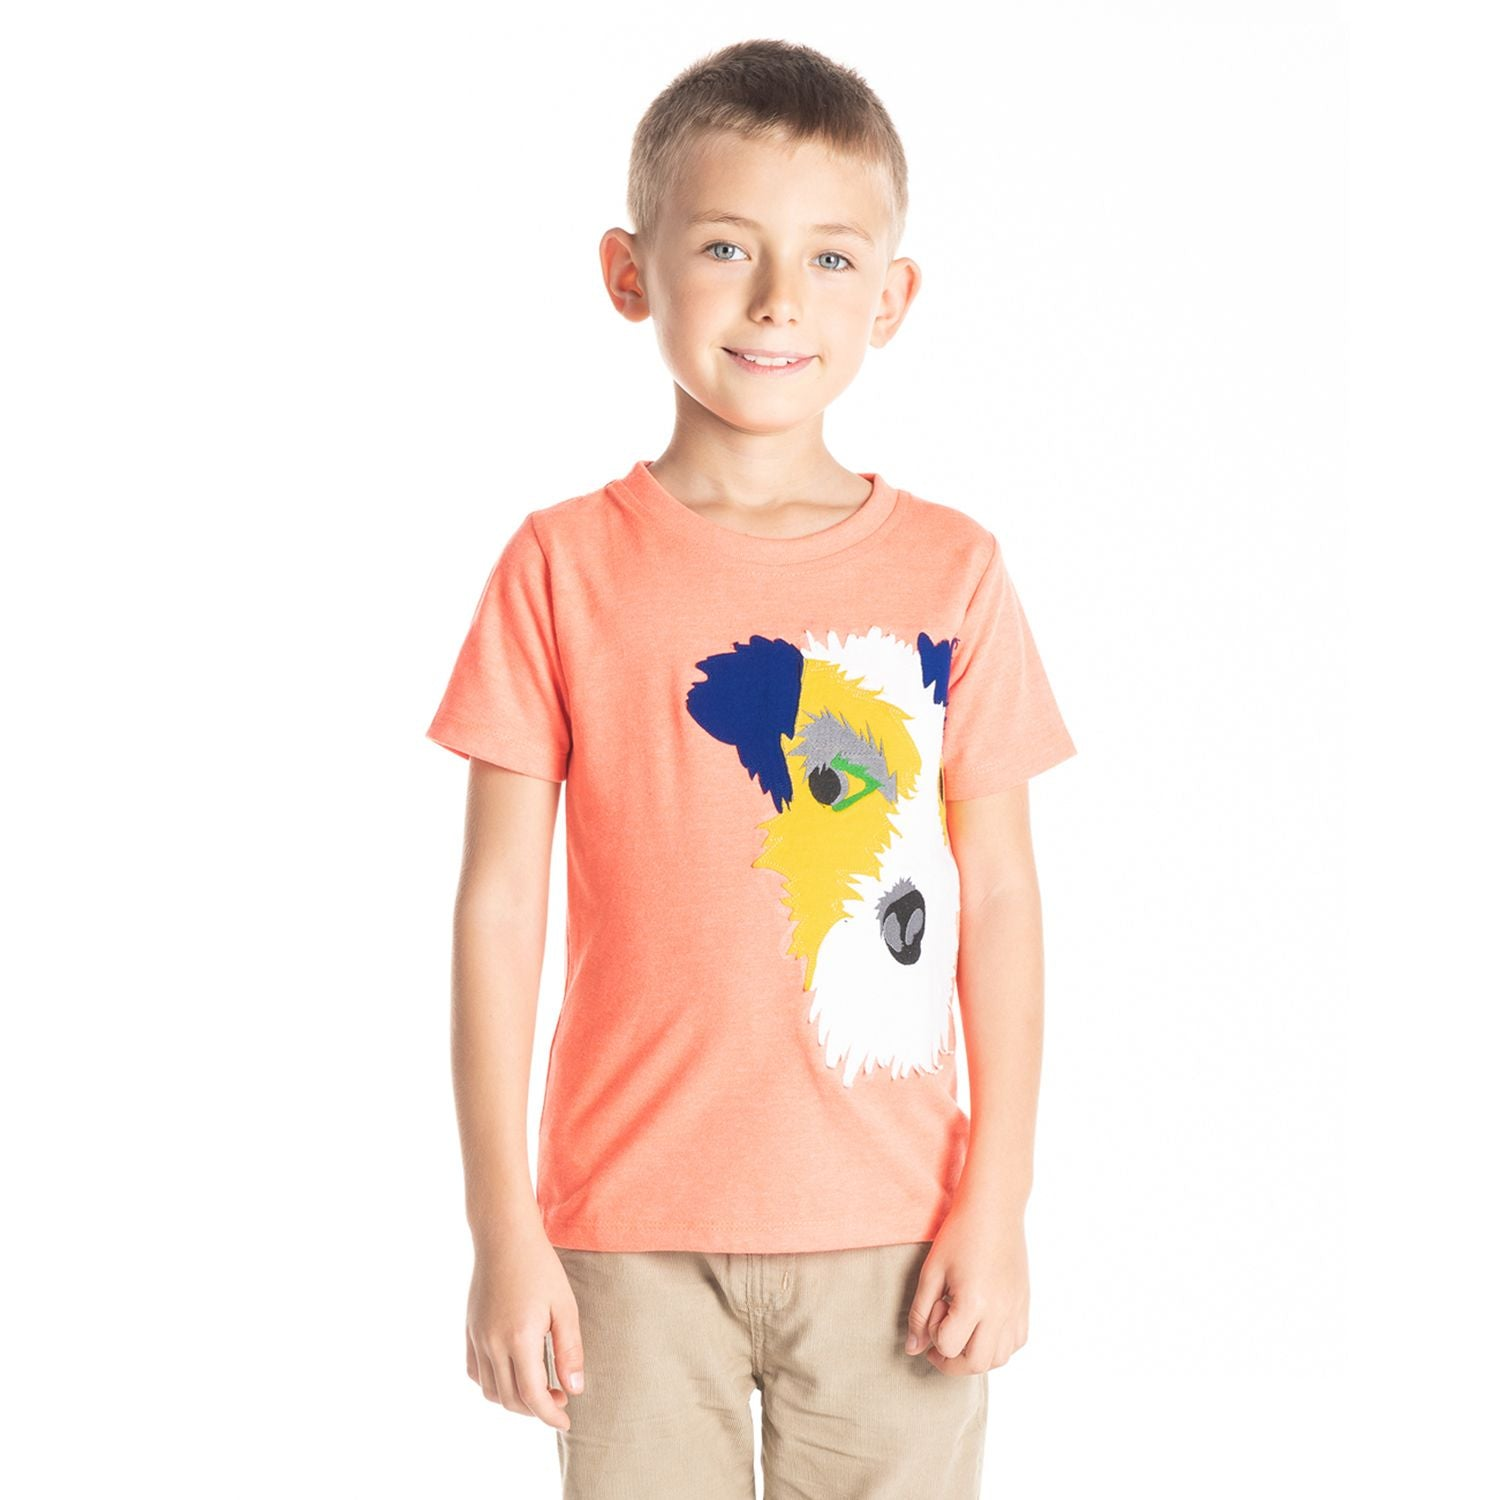 Roofy Tee for Boys